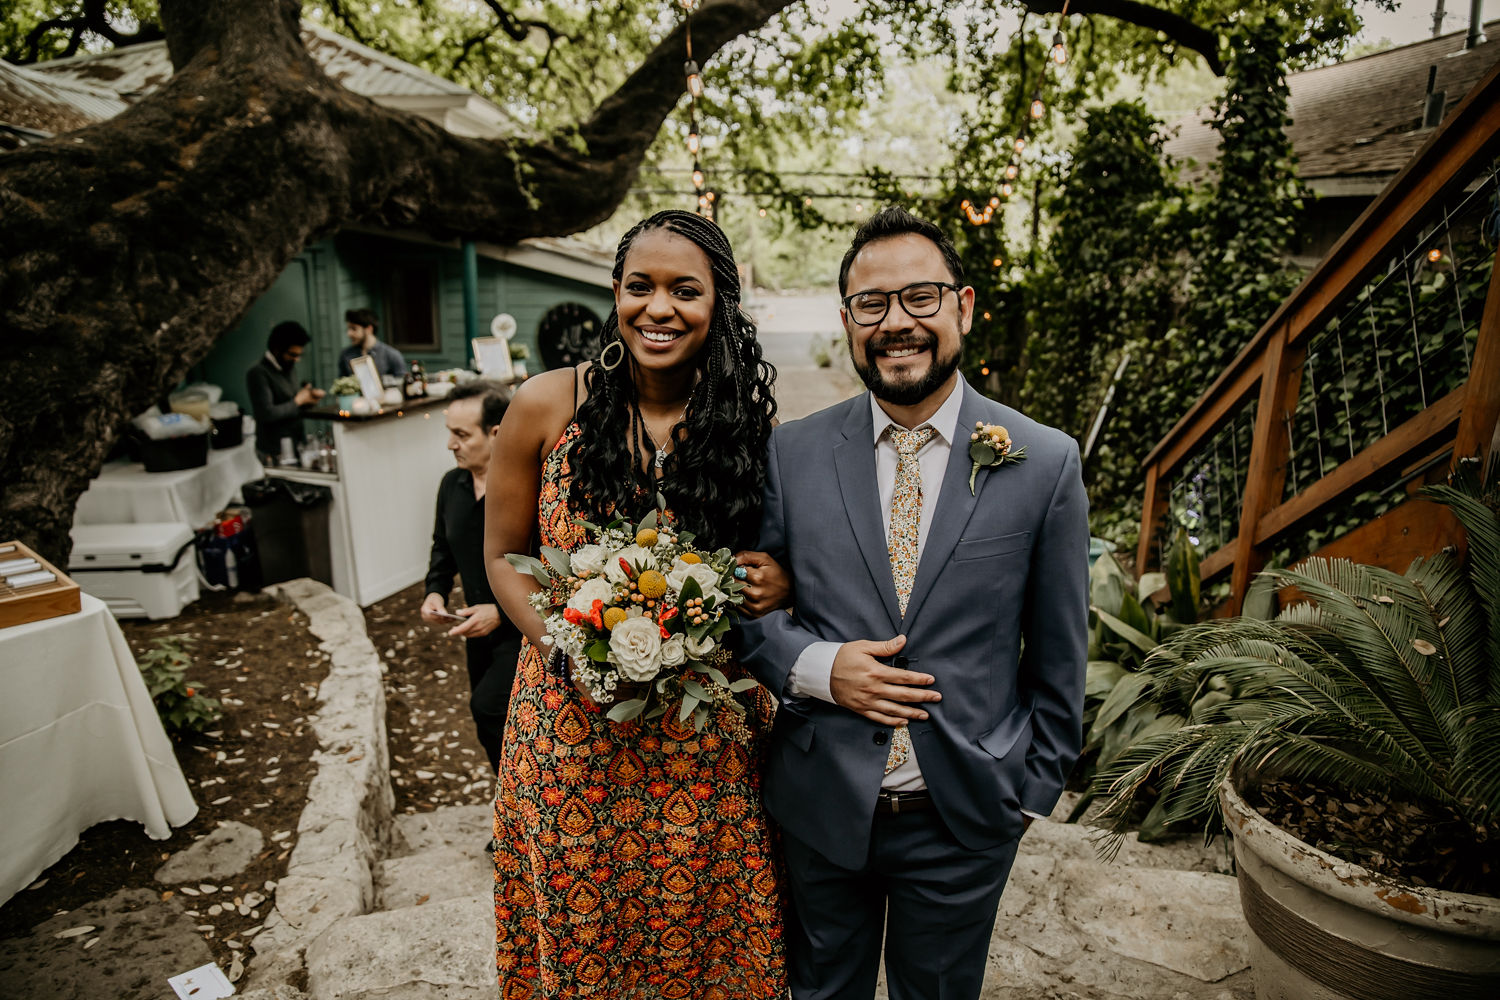 Mindy and Omar's wedding at Sanctuary Event Space